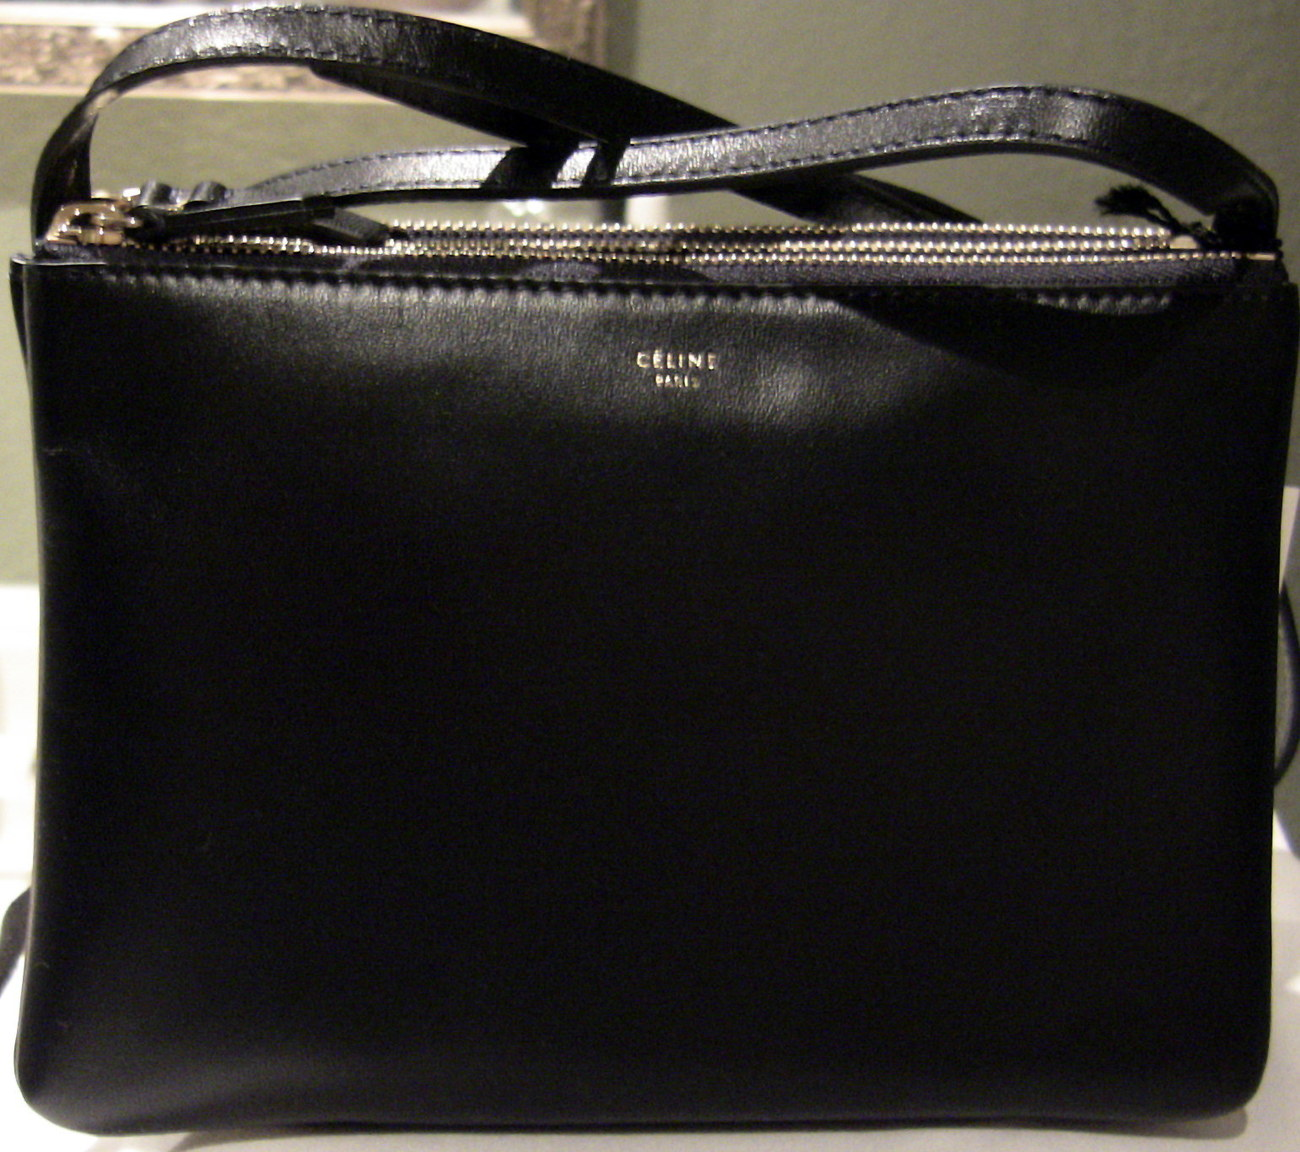 CELINE TRIO CROSSBODY BAG, NAVY BLUE